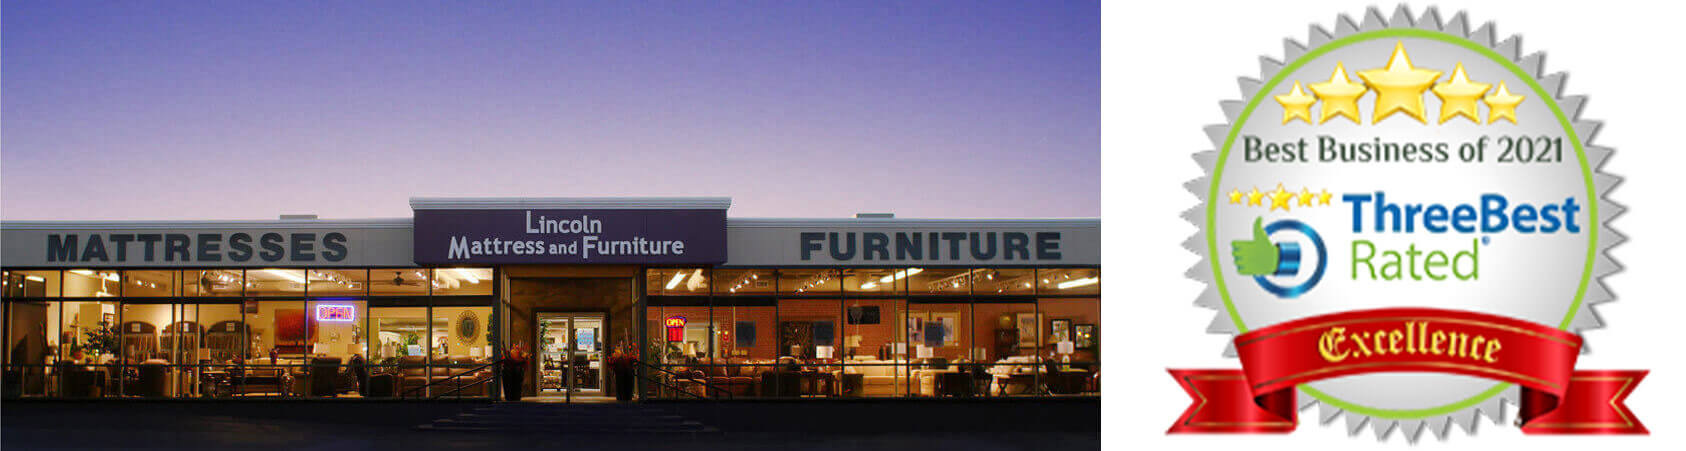 Lincoln Mattress and Furniture